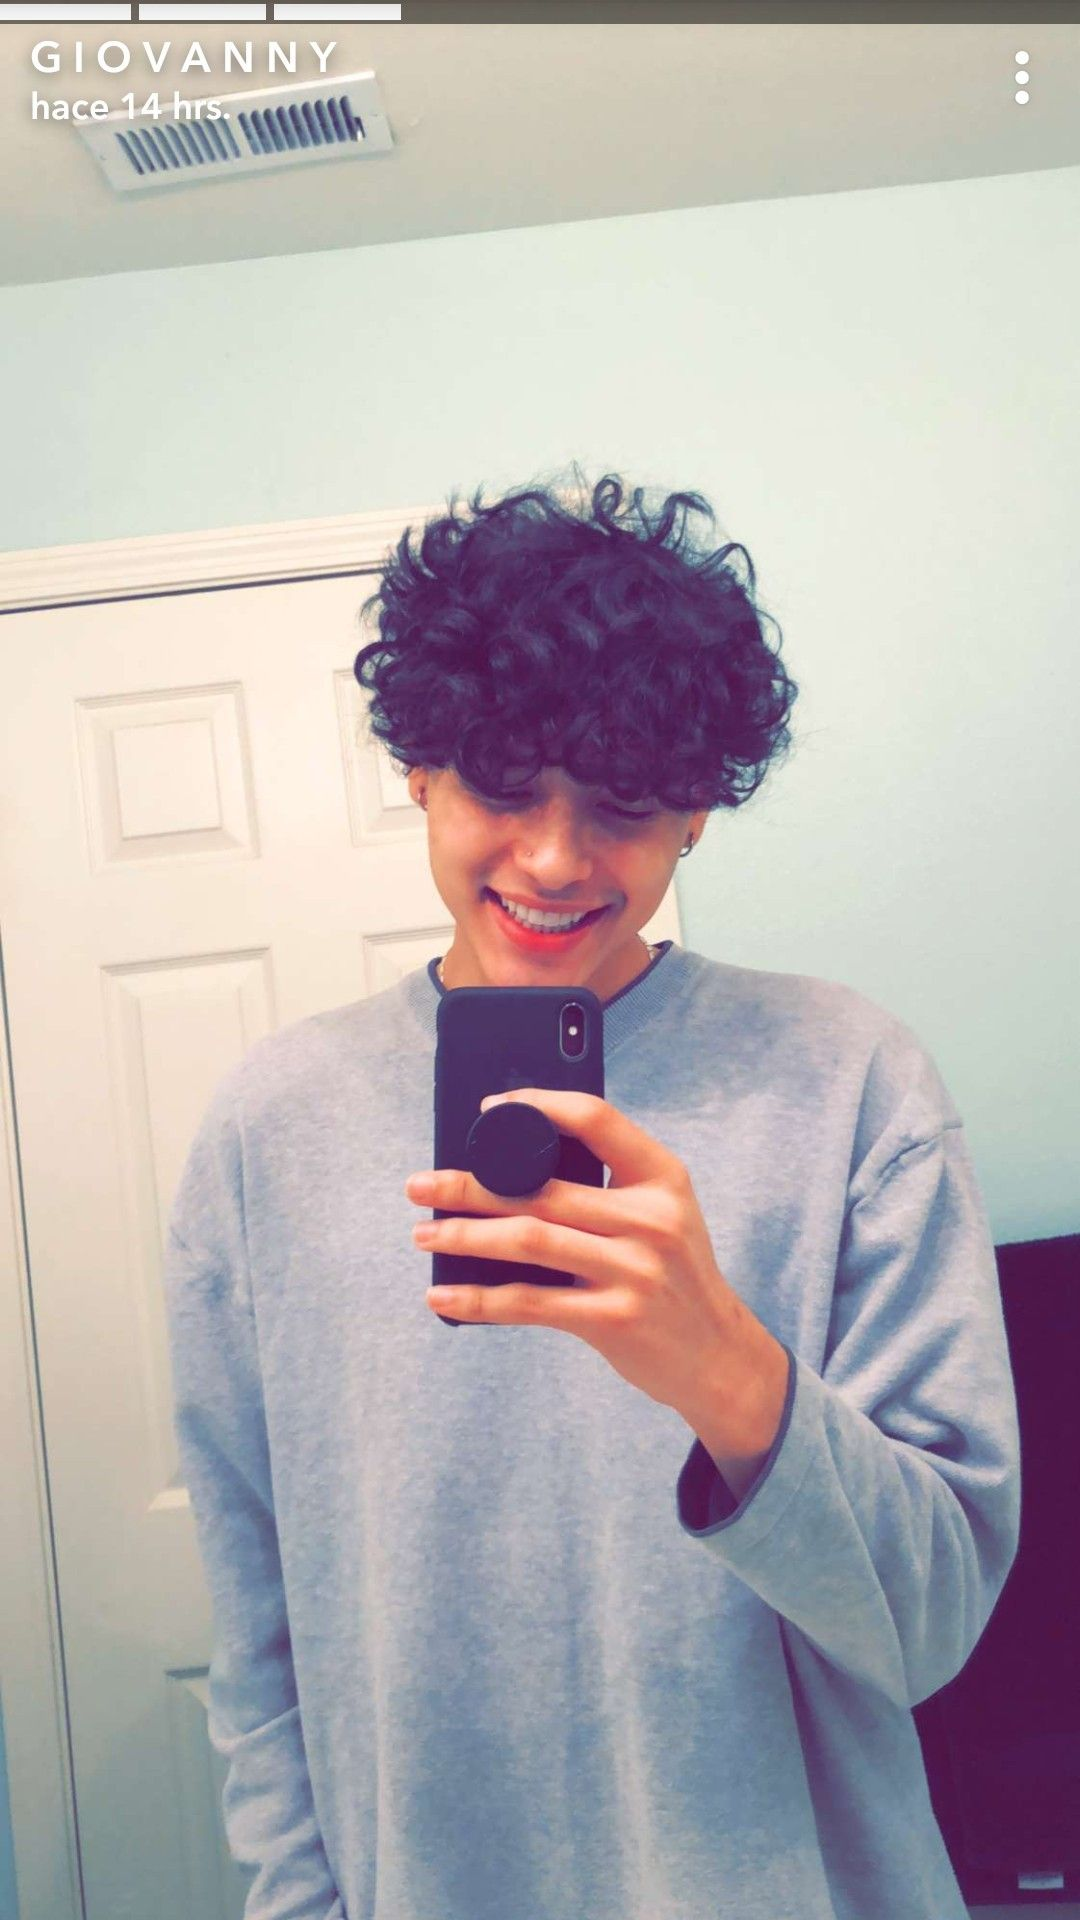 Pin By Javi On Goalѕ Light Skin Boys Cute Lightskinned Boys Curly Hair Styles